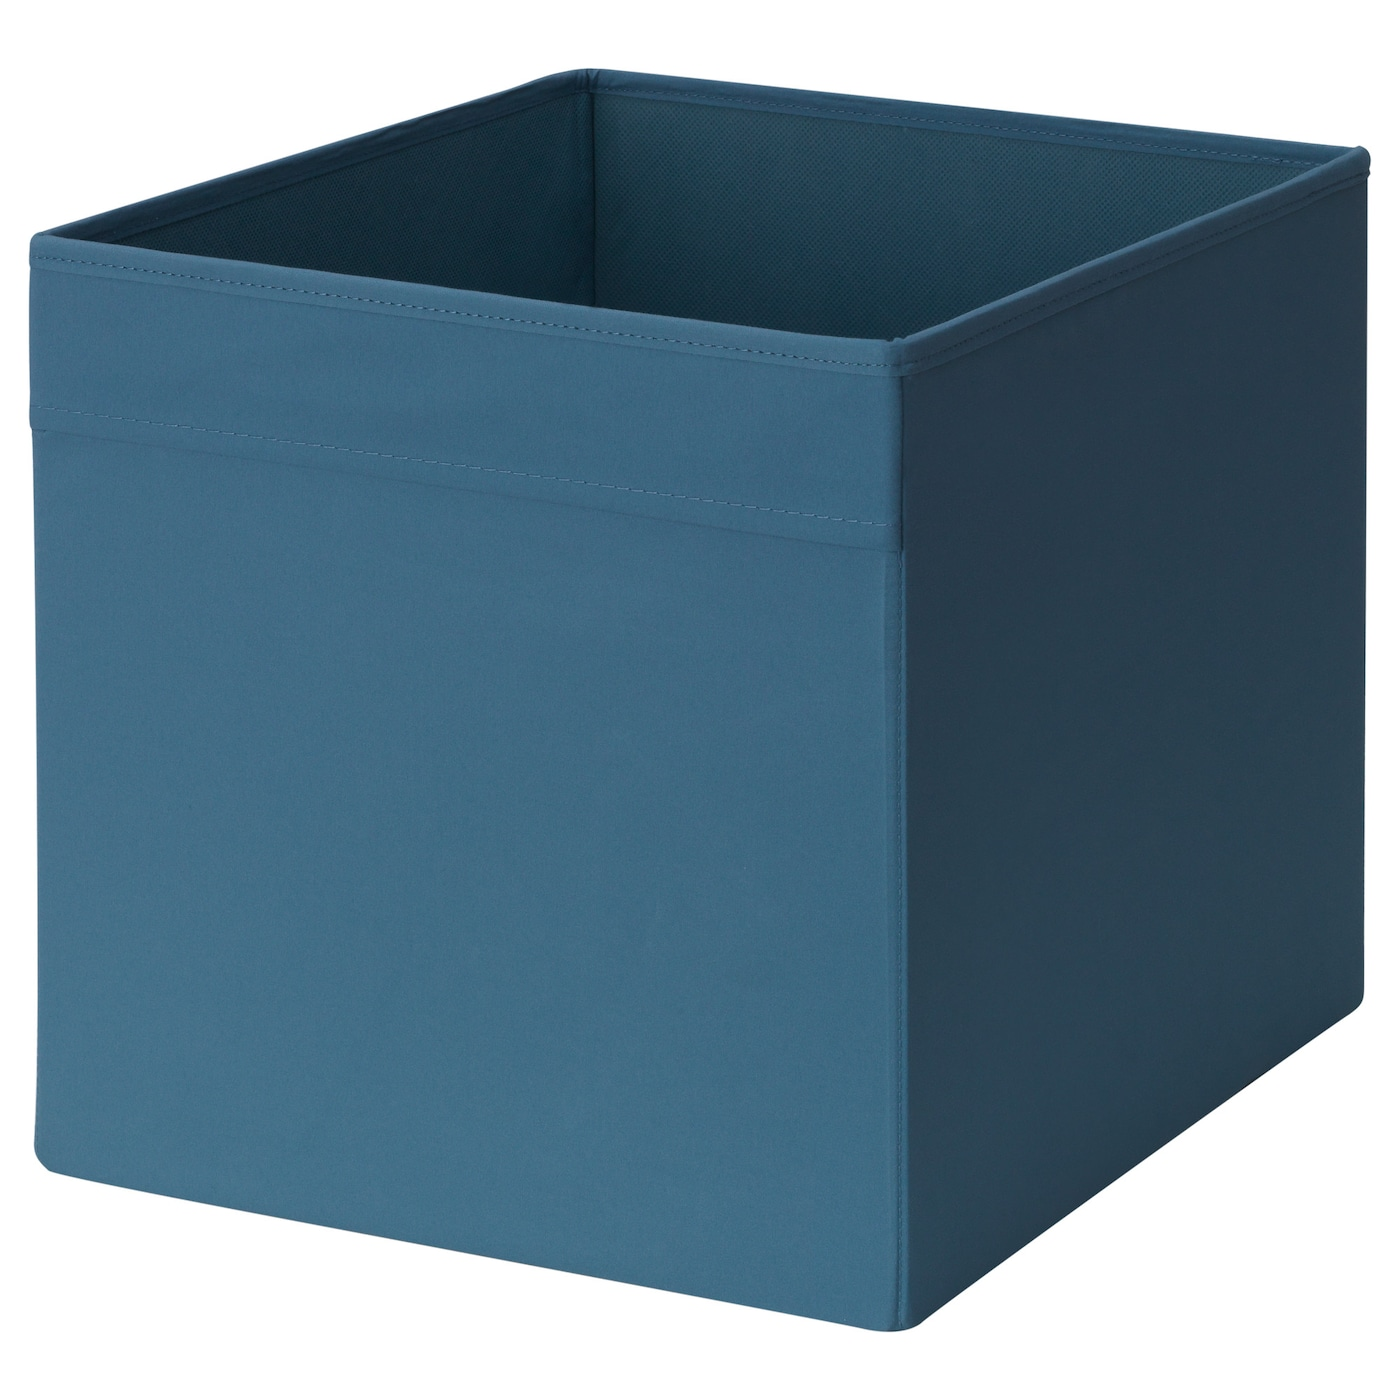 storage boxes storage baskets ikea. Black Bedroom Furniture Sets. Home Design Ideas